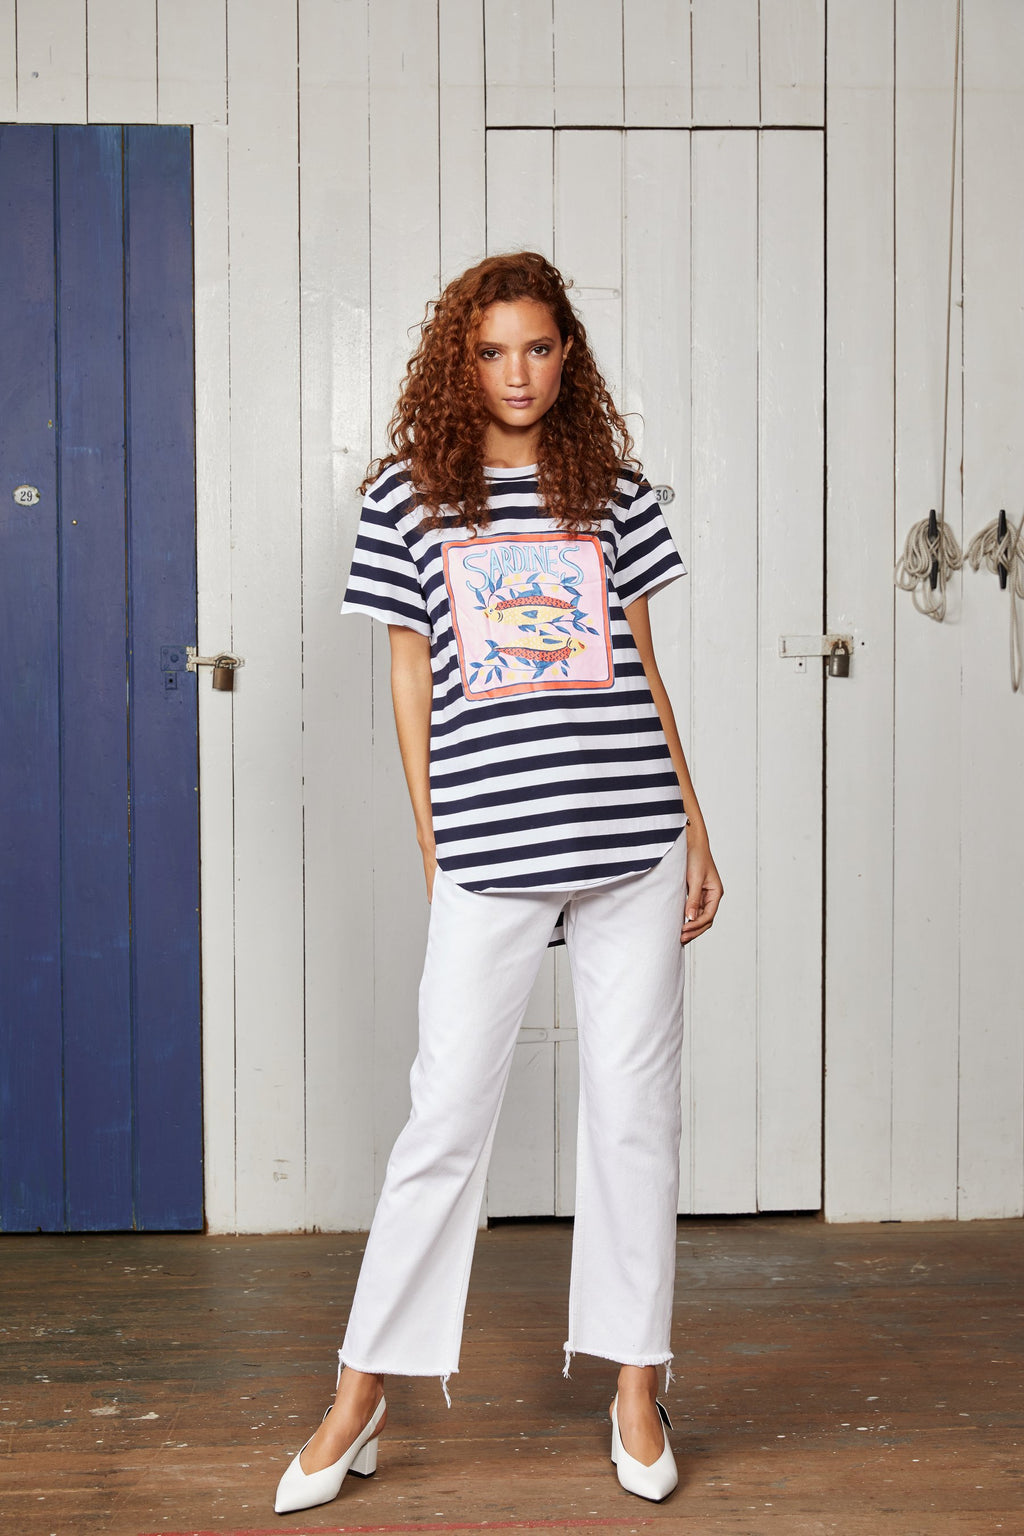 BINNY - The Galley Tshirt online at PAYA boutique